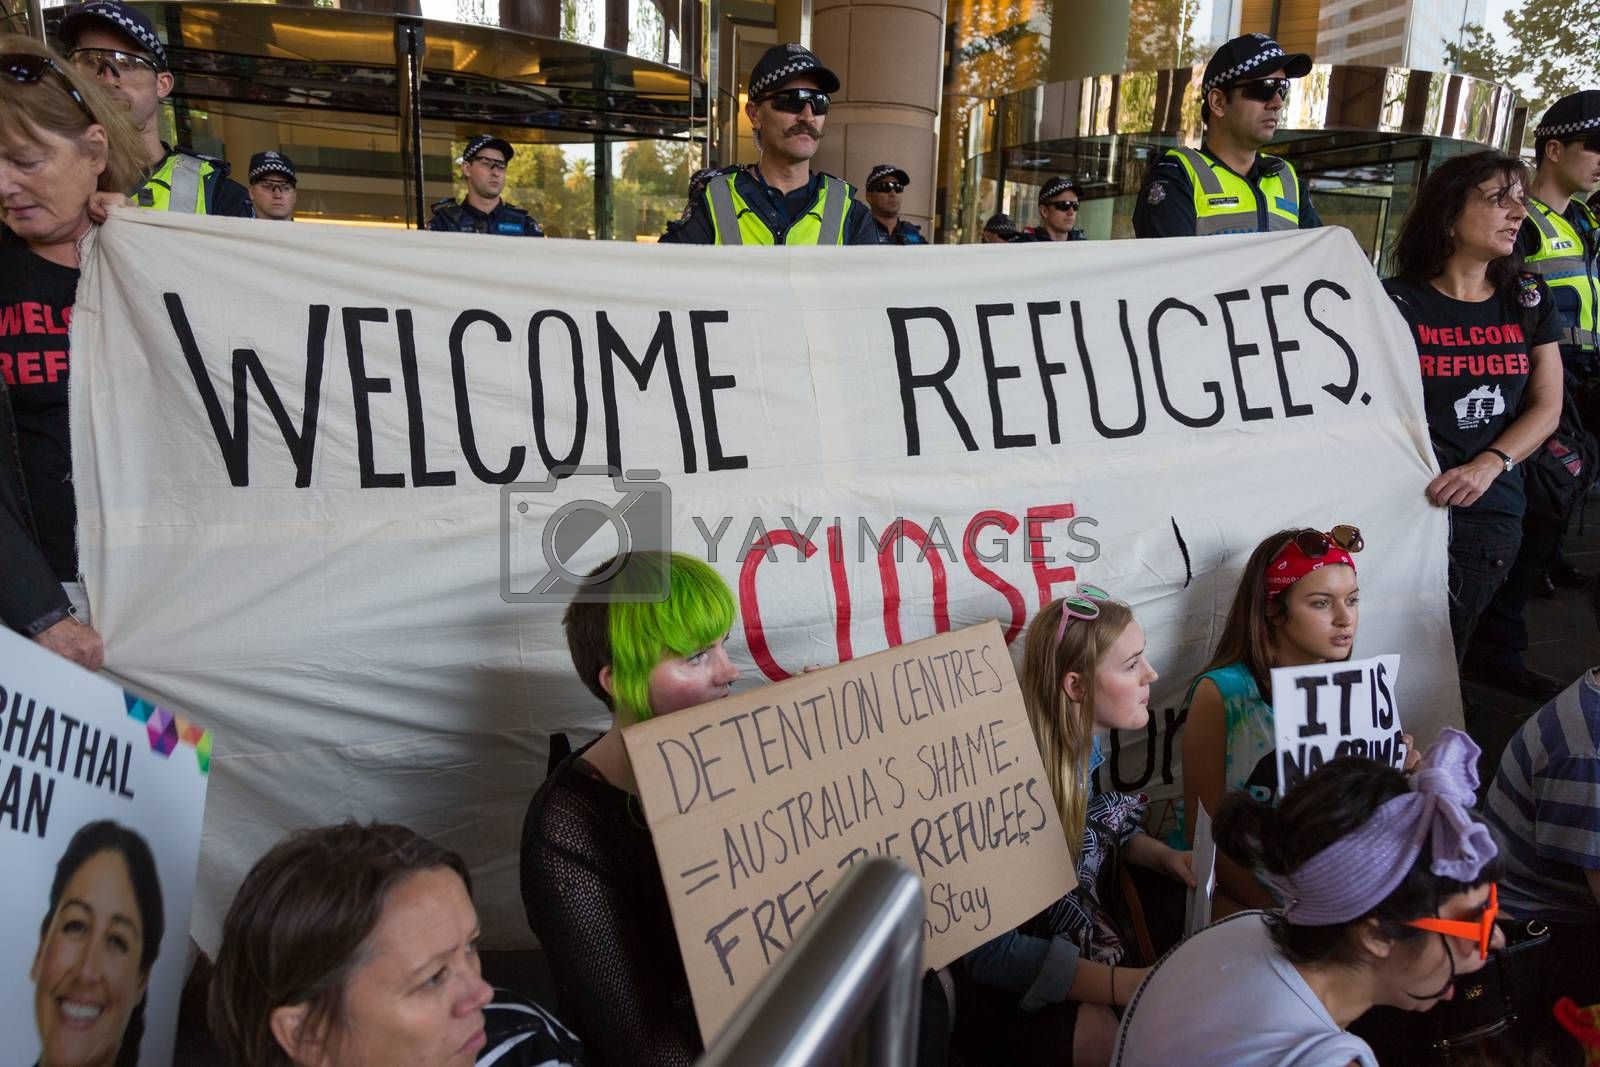 MELBOURNEAUSTRALIA - FEBRUARY 4: Refugee activists along with the Socialist Alliance and University Students, protest in Melbourne against sending children back from onshore camps to Nauru offshore centres.